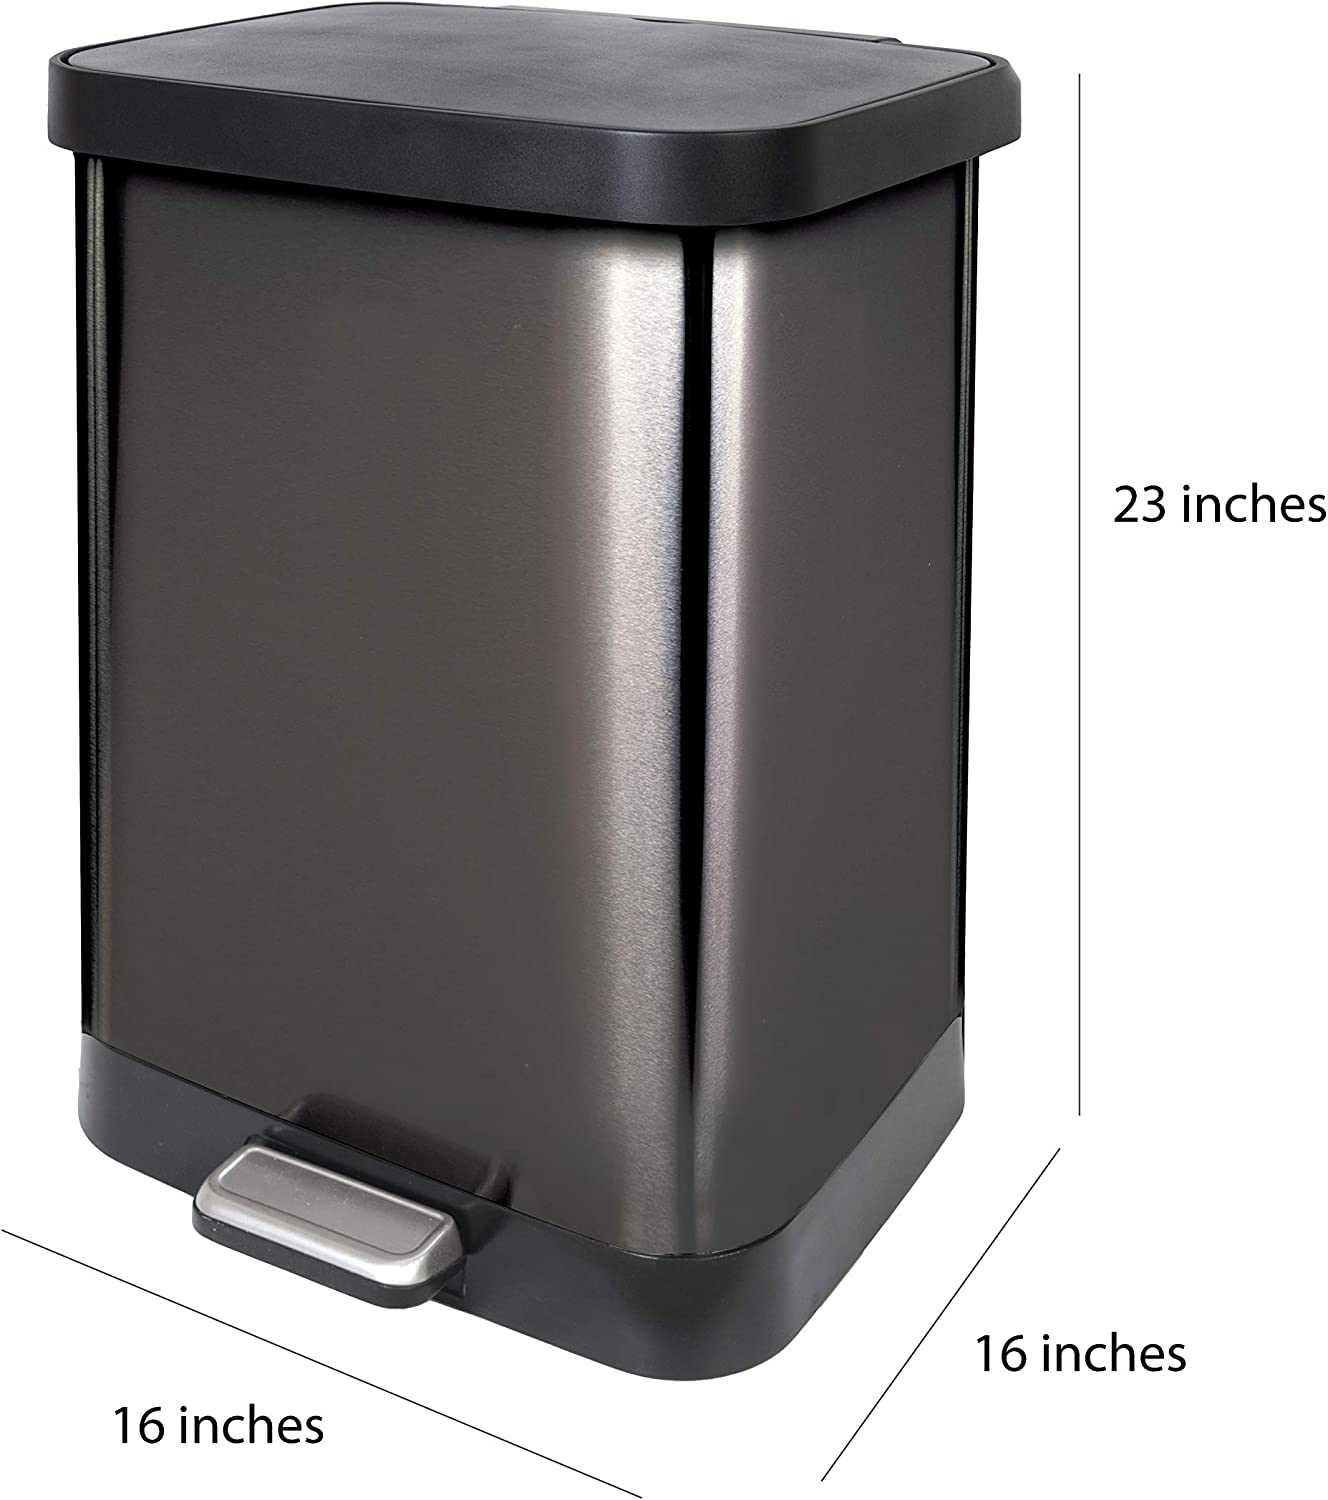 Foot Pedal and Waste Bag Roll Holder Large Metal Kitchen Garbage Bin with Soft Close Lid Glad GLD-74506 Stainless Steel Step Trash Can with Clorox Odor Protection 13 Gallon